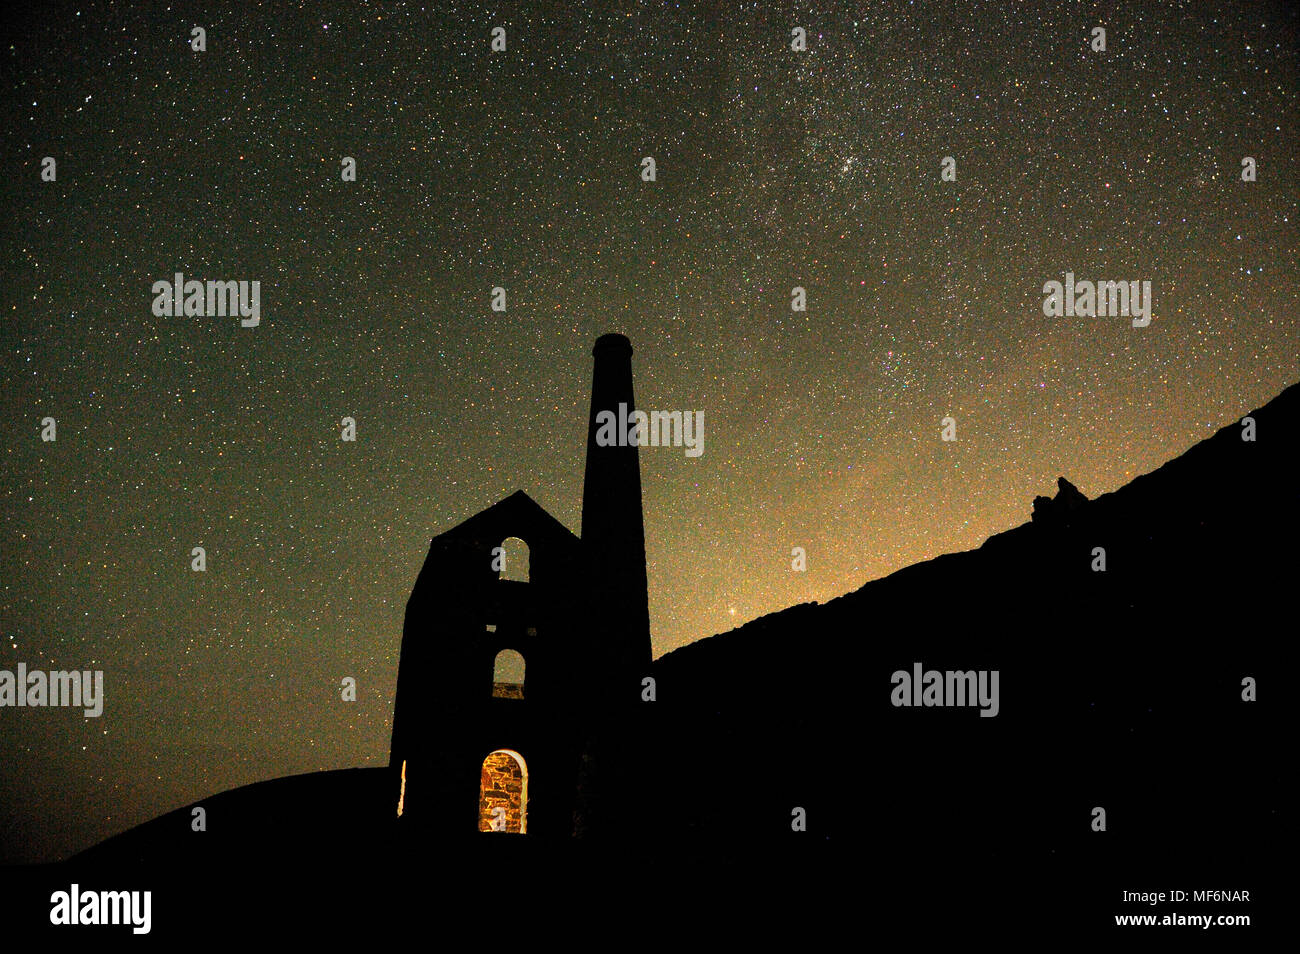 Abandoned Cornish Tin mine under starry night sky, August - Stock Image